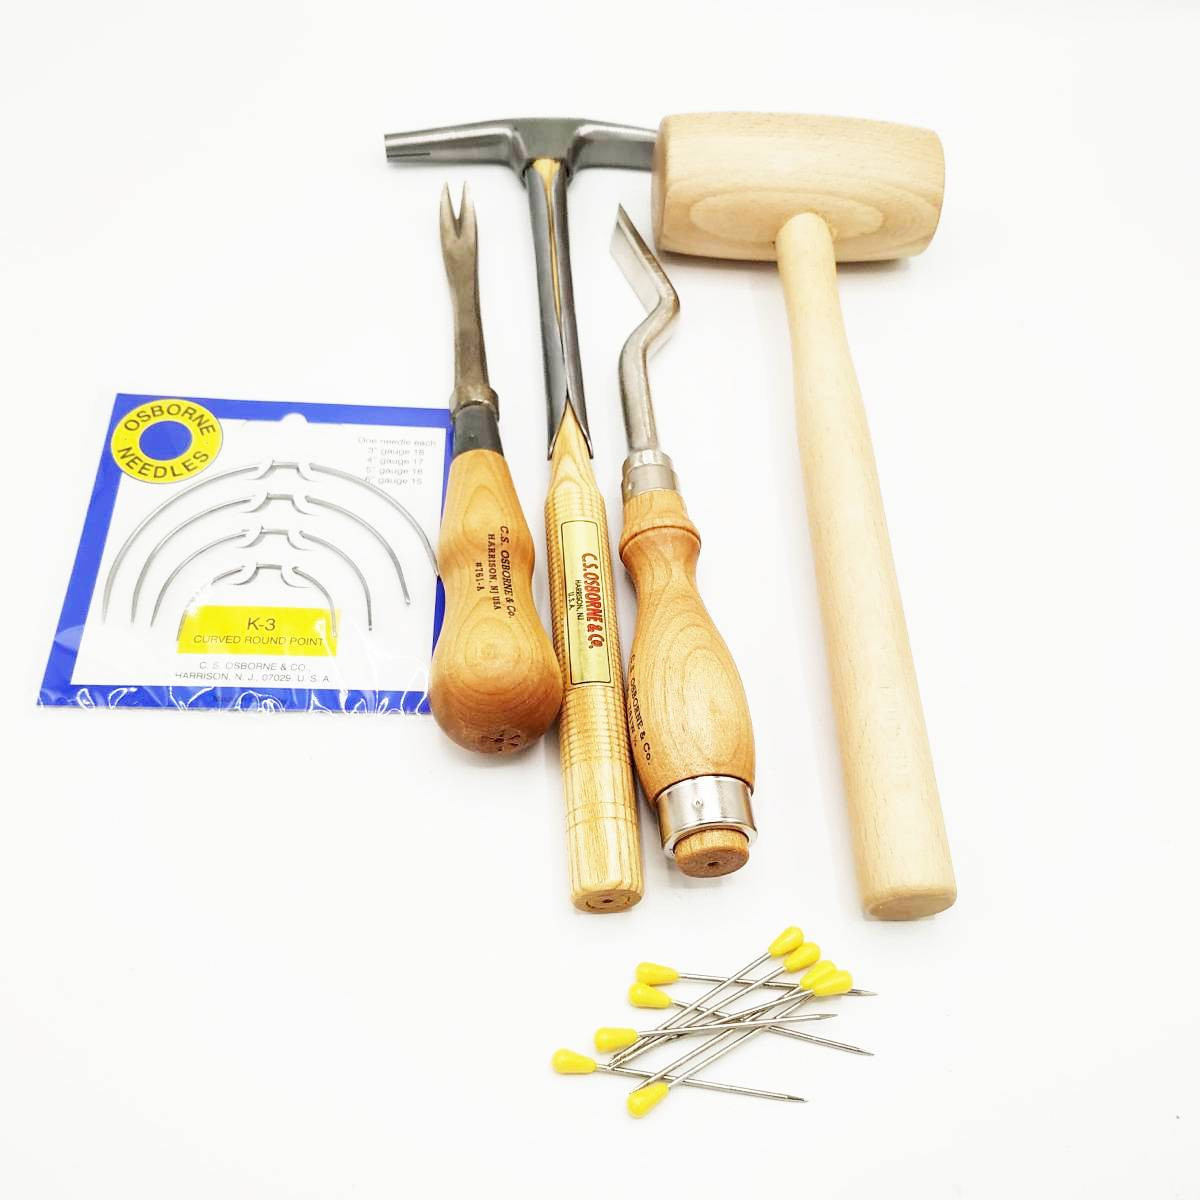 Kit Outils Tapissiers 5